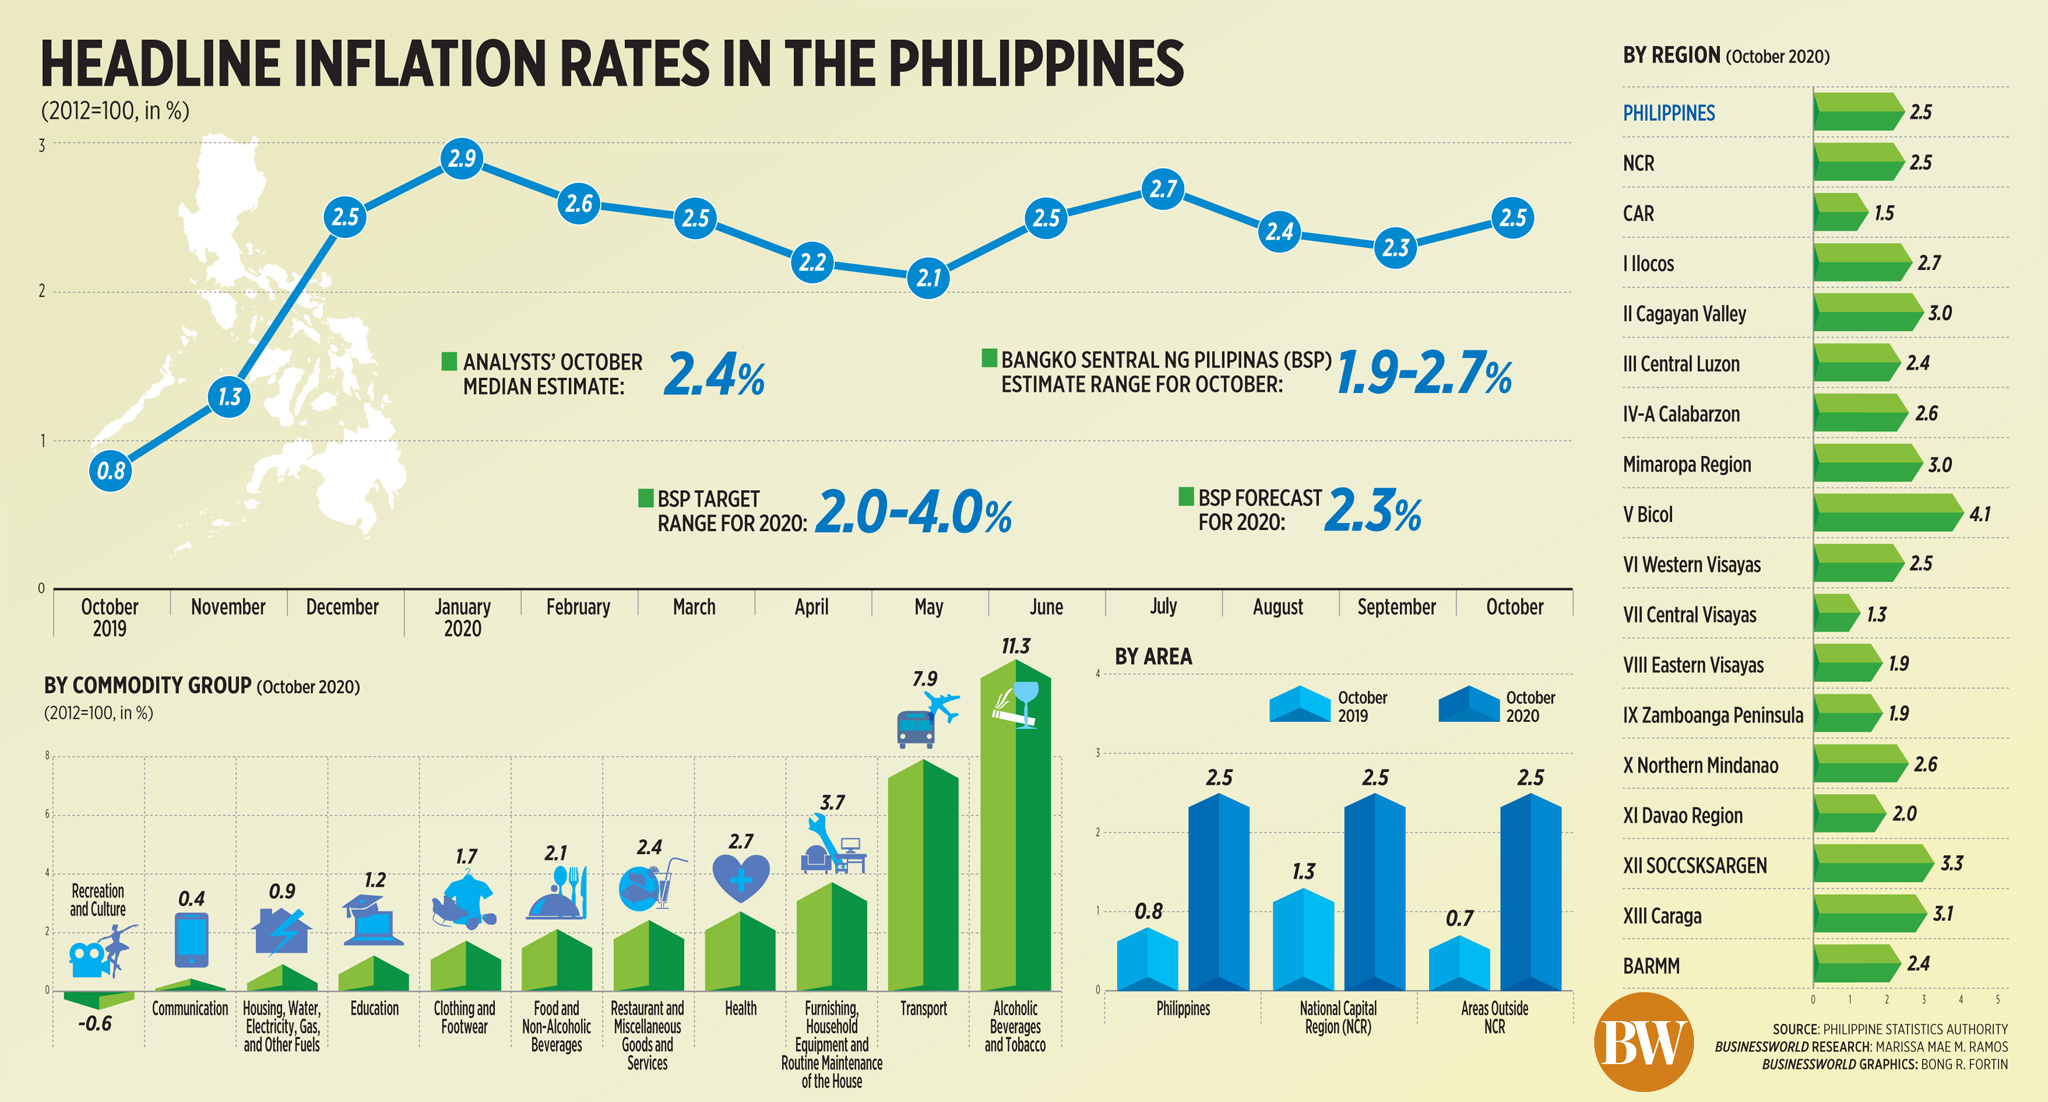 50569562562 9f06a64e27 o - Headline inflation rates in the Philippines (Oct. 2020)